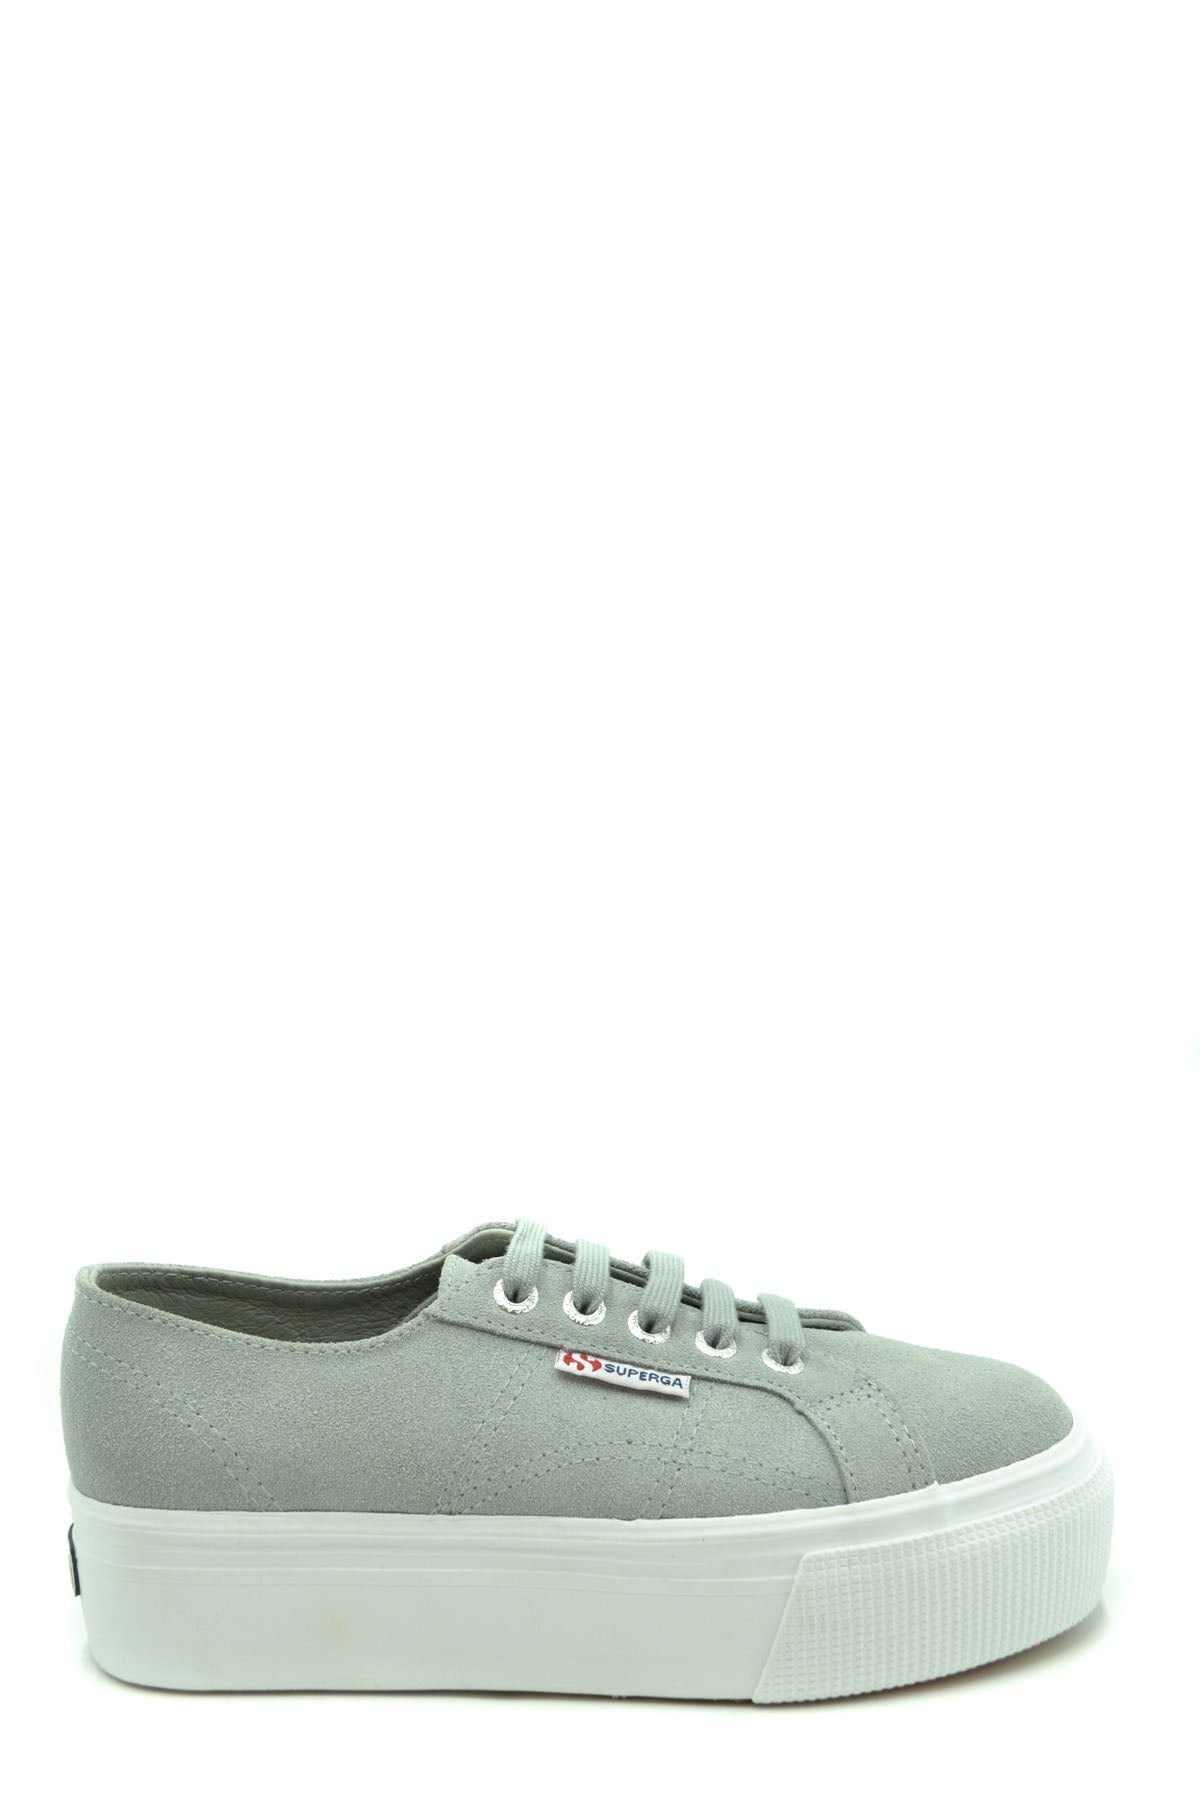 Shoes Superga-Sports & Entertainment - Sneakers-35-Product Details Year: 2020Composition: Chamois 100%Size: EuGender: WomanMade In: VietnamSeason: Spring / SummerType Of Accessory: ShoesMain Color: GrayTerms: New With LabelManufacturer Part Number: S003Lm0-Keyomi-Sook